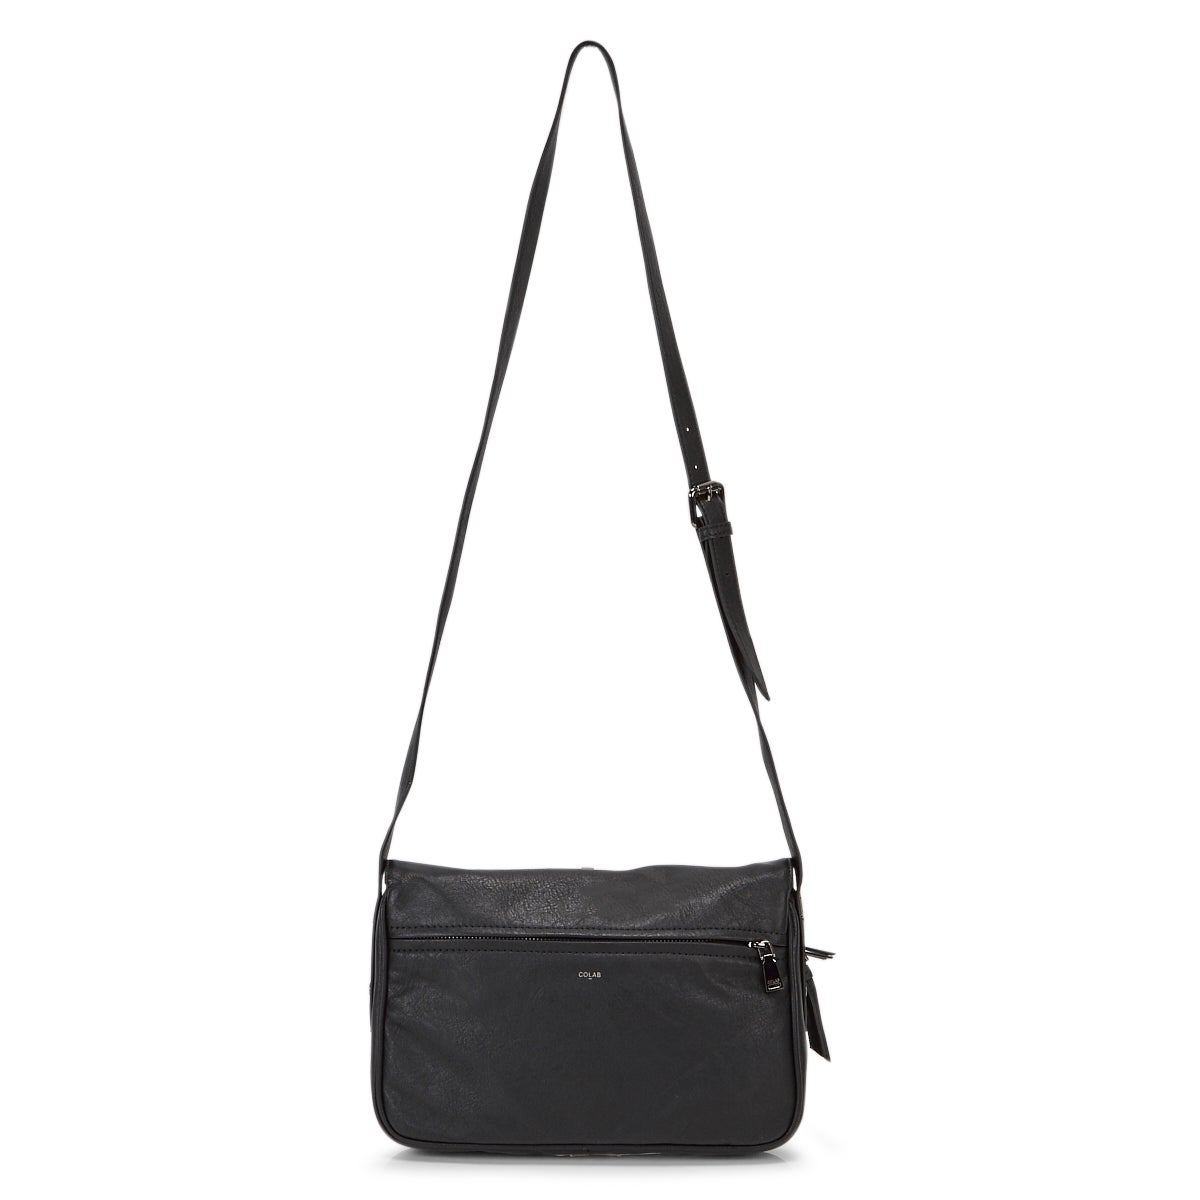 Lds Messenger black crossbody bag